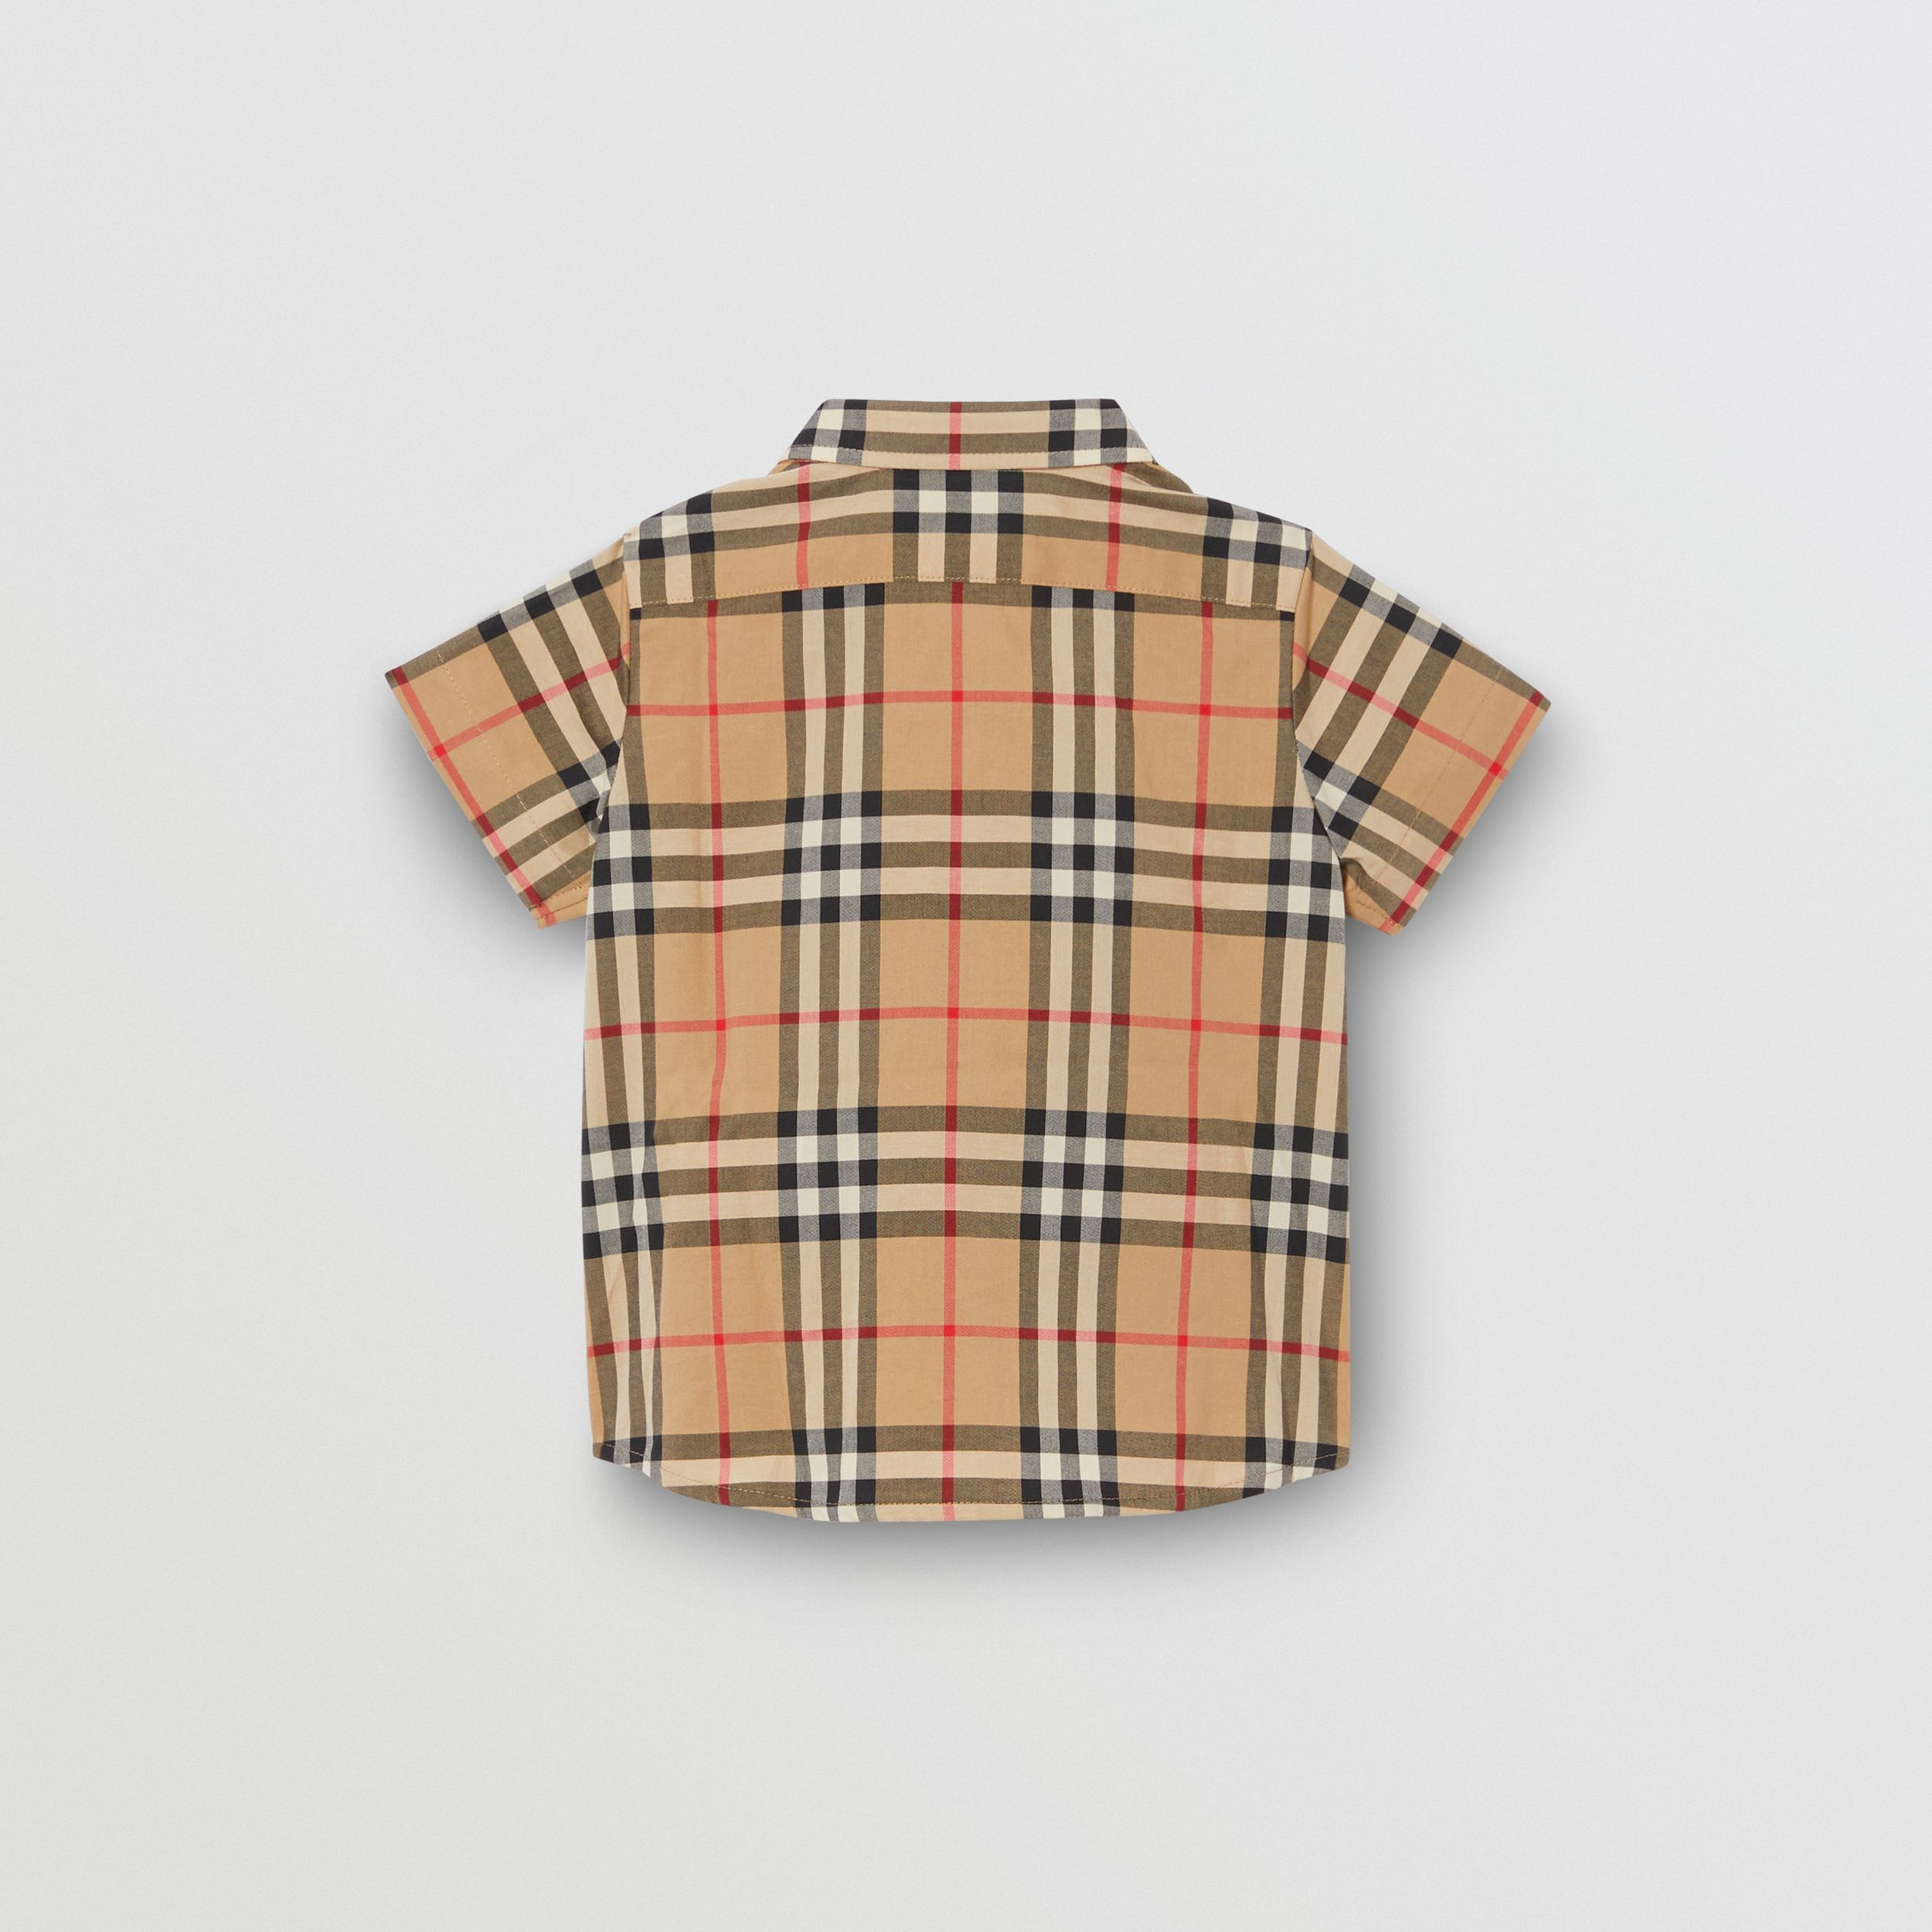 Short-sleeve Vintage Check Cotton Shirt in Archive Beige - Children | Burberry - 4